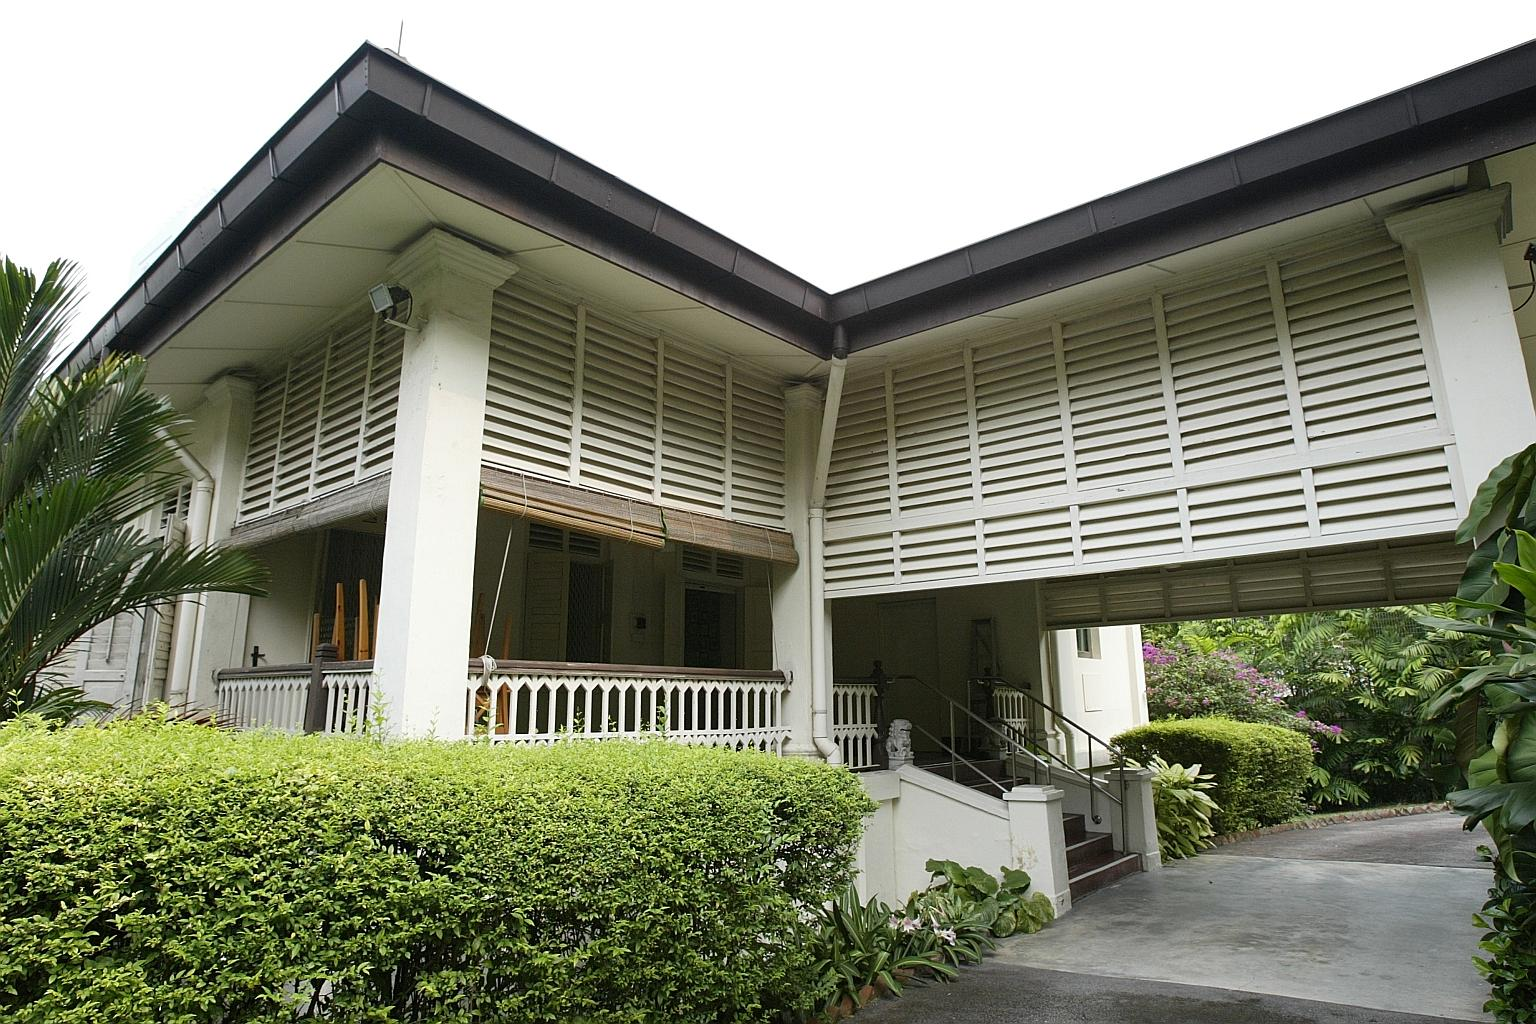 Lee Kuan Yew's old house at Oxley Road